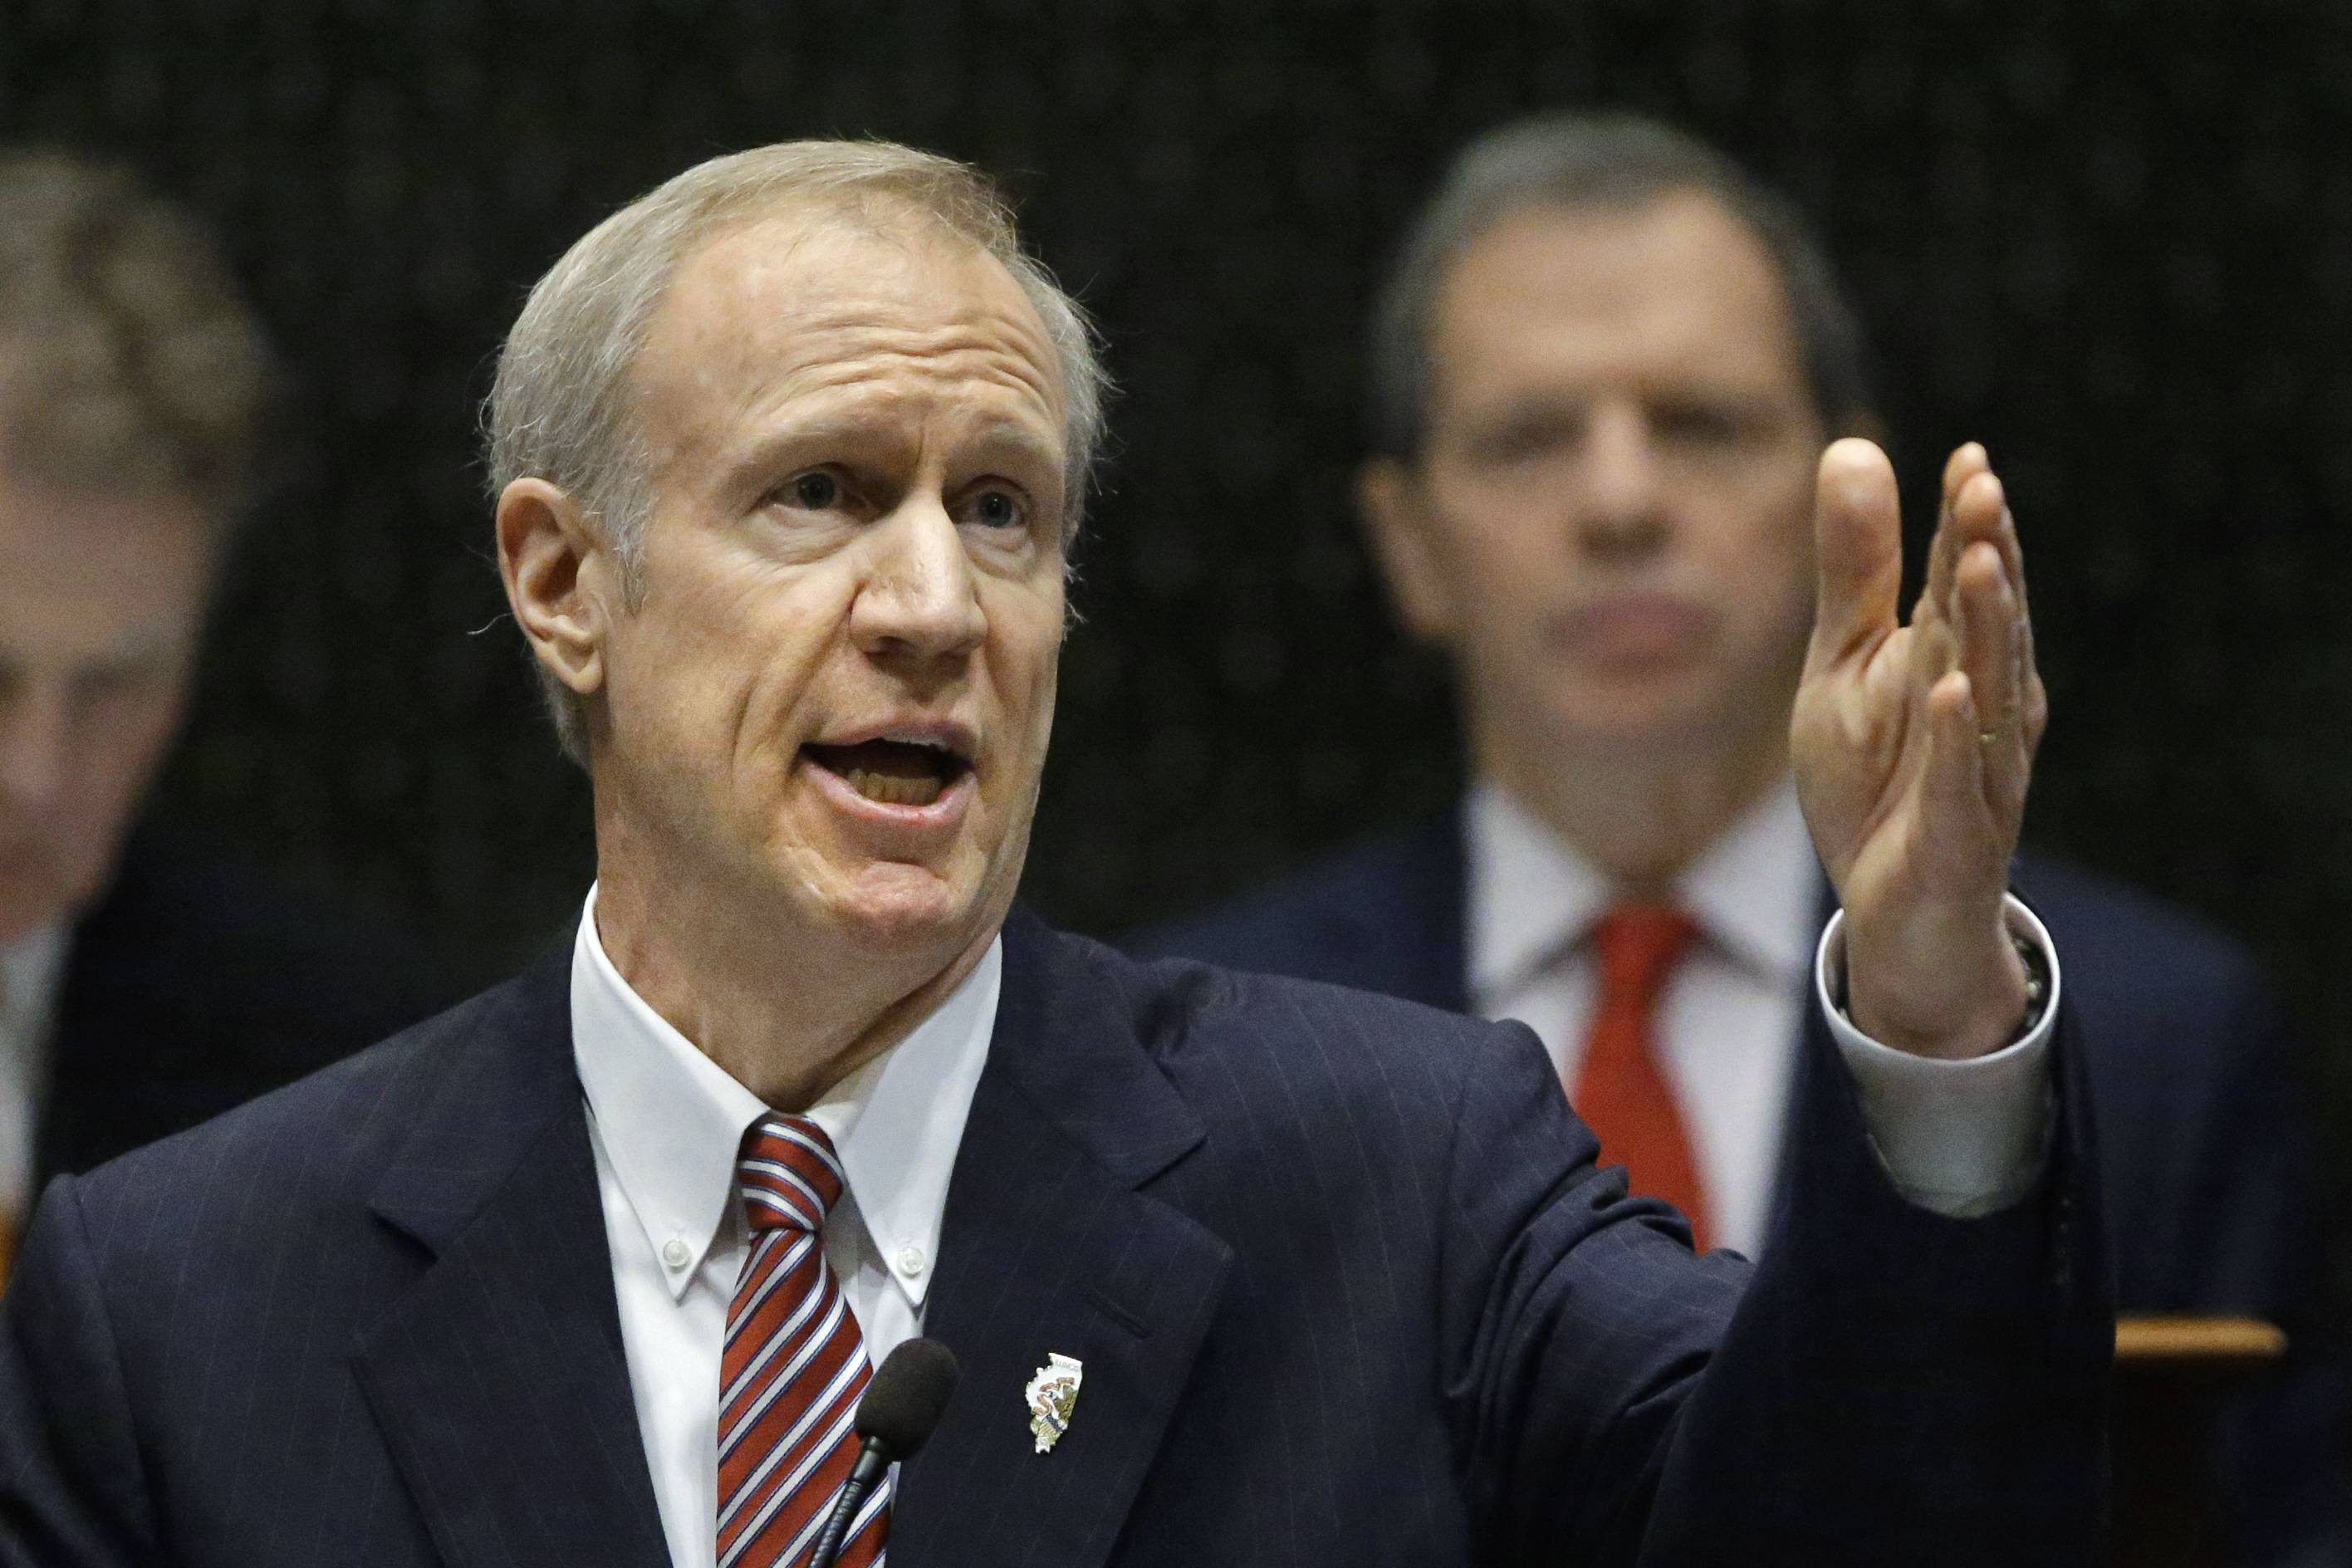 Gov. Bruce Rauner delivered his first State of the State address Feb. 4 last year at the Capitol in Springfield. This year he will aim to find common ground with Democrats -- a tall order.